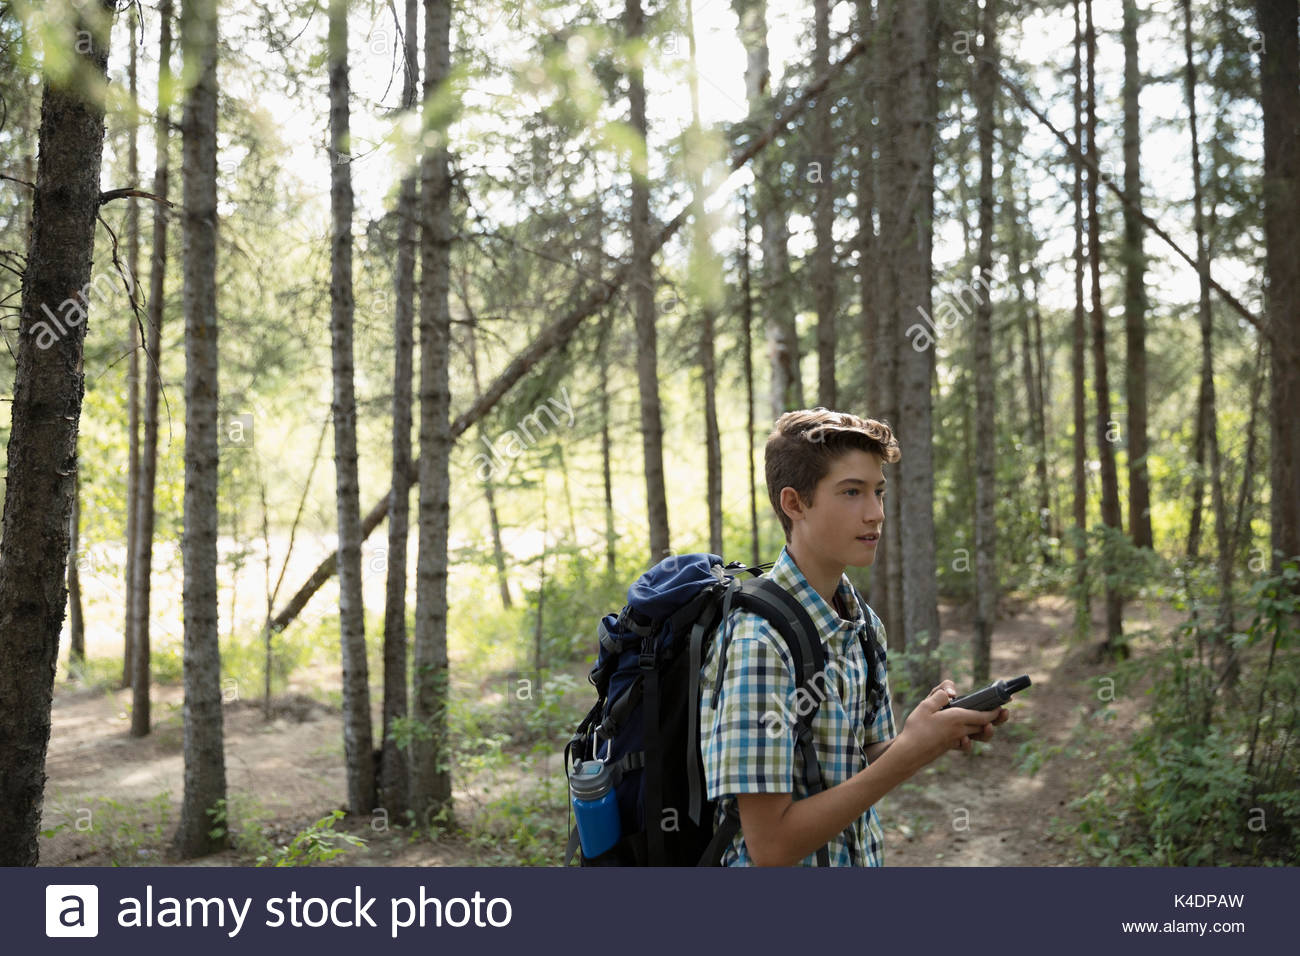 Teenage boy with backpack using compass, hiking in woods - Stock Image